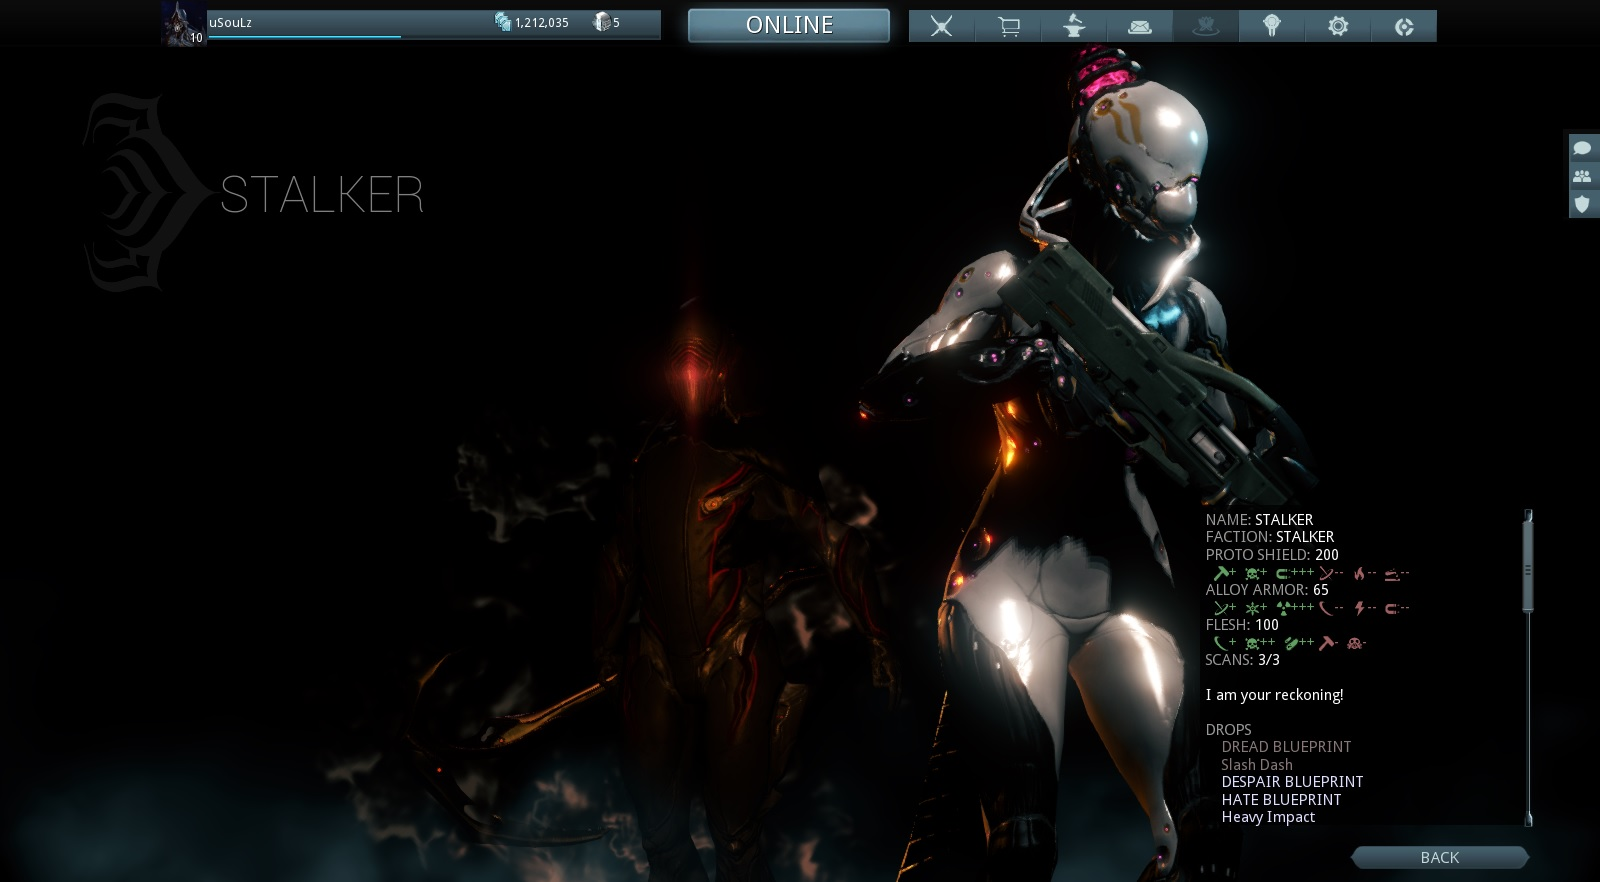 Image stalker 3 of 3 codex scansg warframe wiki fandom stalker 3 of 3 codex scansg malvernweather Image collections